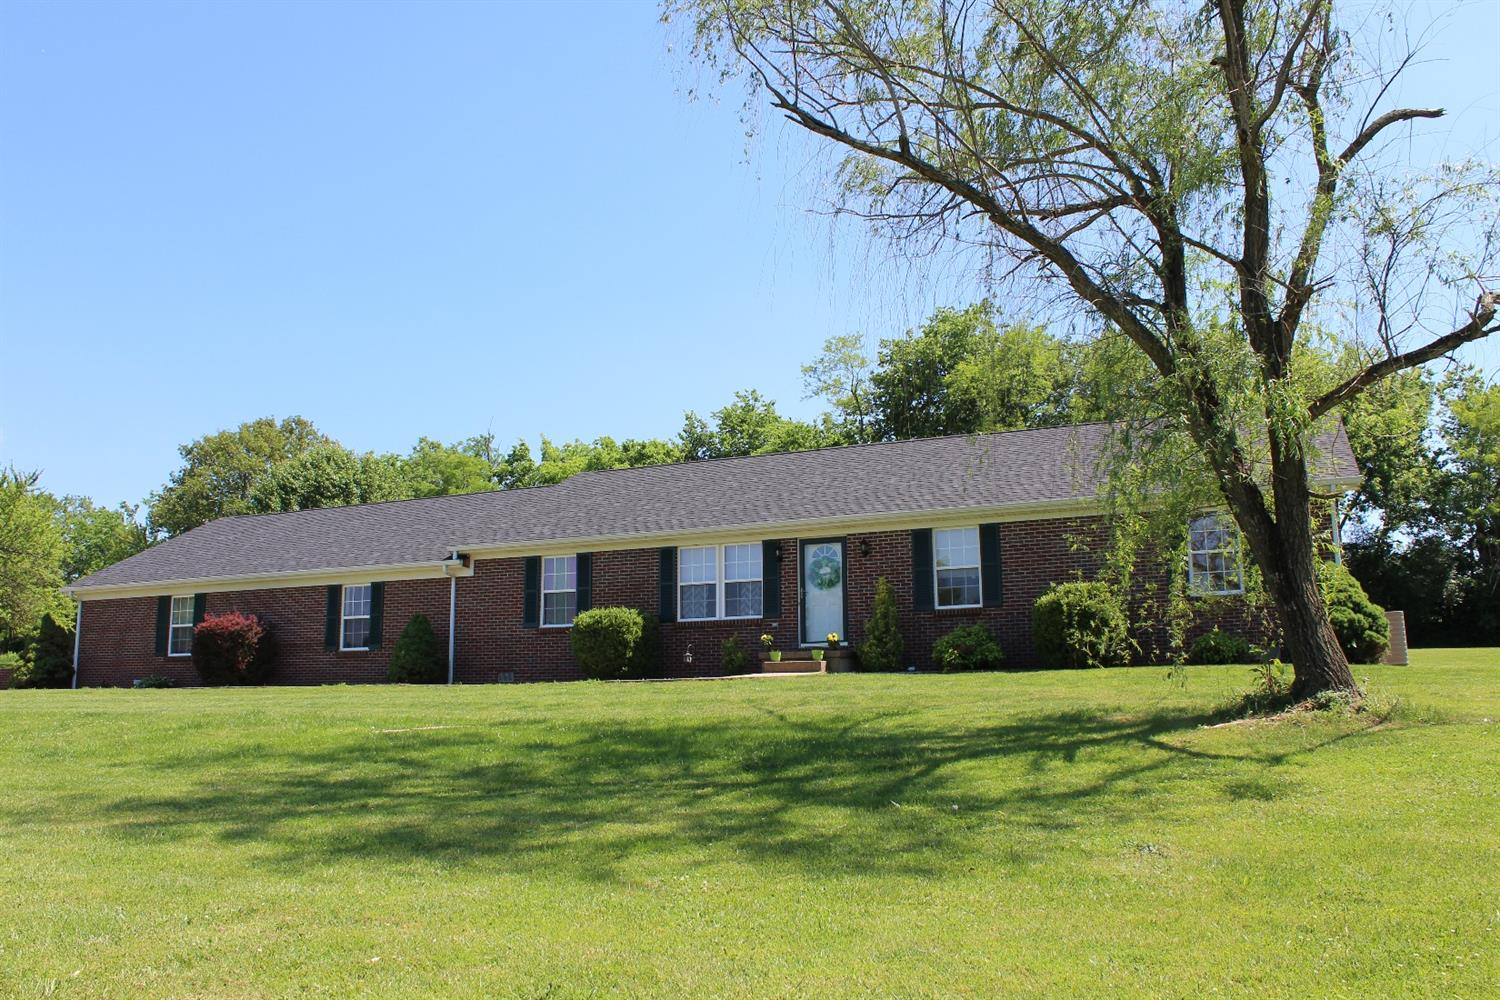 Beautiful%20all%20brick%20ranch%20in%20Harrodsburg,%20located%20on%20a%20private%20road%20directly%20off%20Us%20127,%20only%20minutes%20from%20all%20schools%20and%20Anderson%20Dean%20Park.%20This%20home%20features%205%20bedroom's!%202%20bathrooms%20with%20formal%20living%20room%20and%20a%20huge%20family%20room!%20The%20eat%20in%20Kitchen%20features%20beautiful%20granite%20counters%20and%20stainless%20steel%20appliances.%20Oversized%202%20car%20garage,%20nice%20paved%20driveway%20with%20official%20regulation%20NBA%20basketball%20goal.%20New%20flooring%20through%20most%20of%20the%20home.%20Very%20secluded%20and%20private%20wooded%20lot%20at%20the%20end%20of%20a%20dead%20end%20street.%20Don't%20miss%20your%20opportunity%20to%20see%20this%20beautiful%20home,%20Call%20today%20to%20set%20up%20your%20private%20showing.